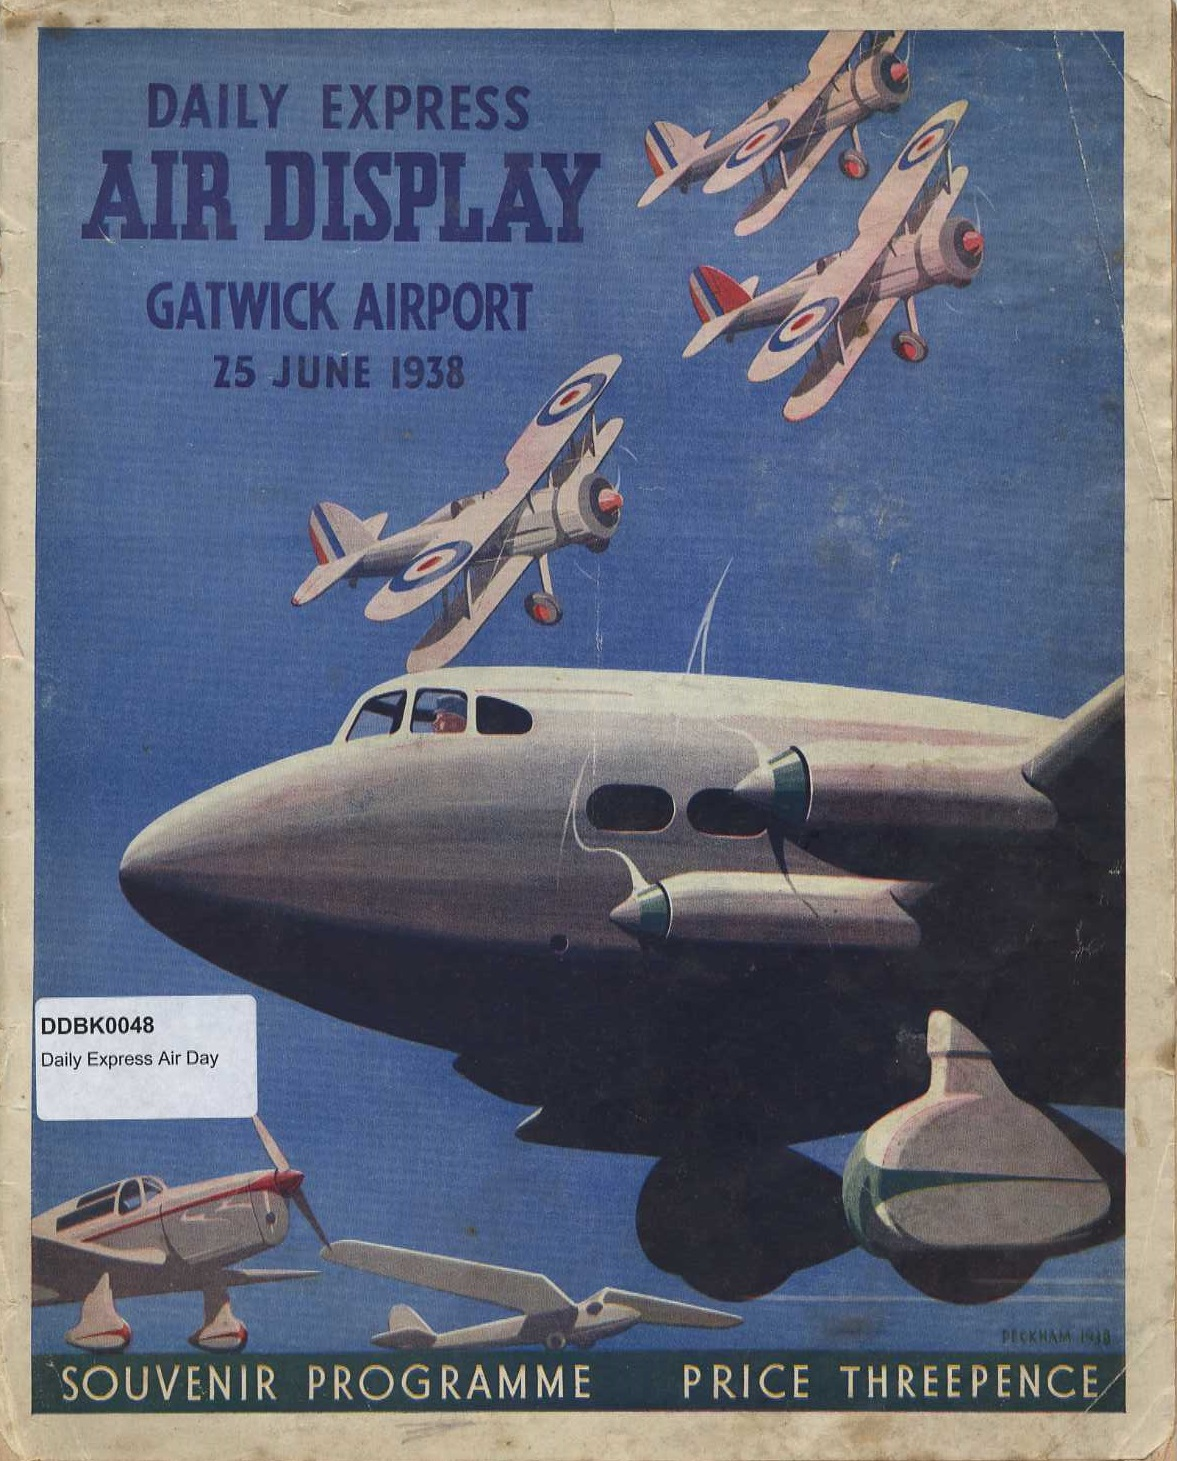 Daily Express Air Day